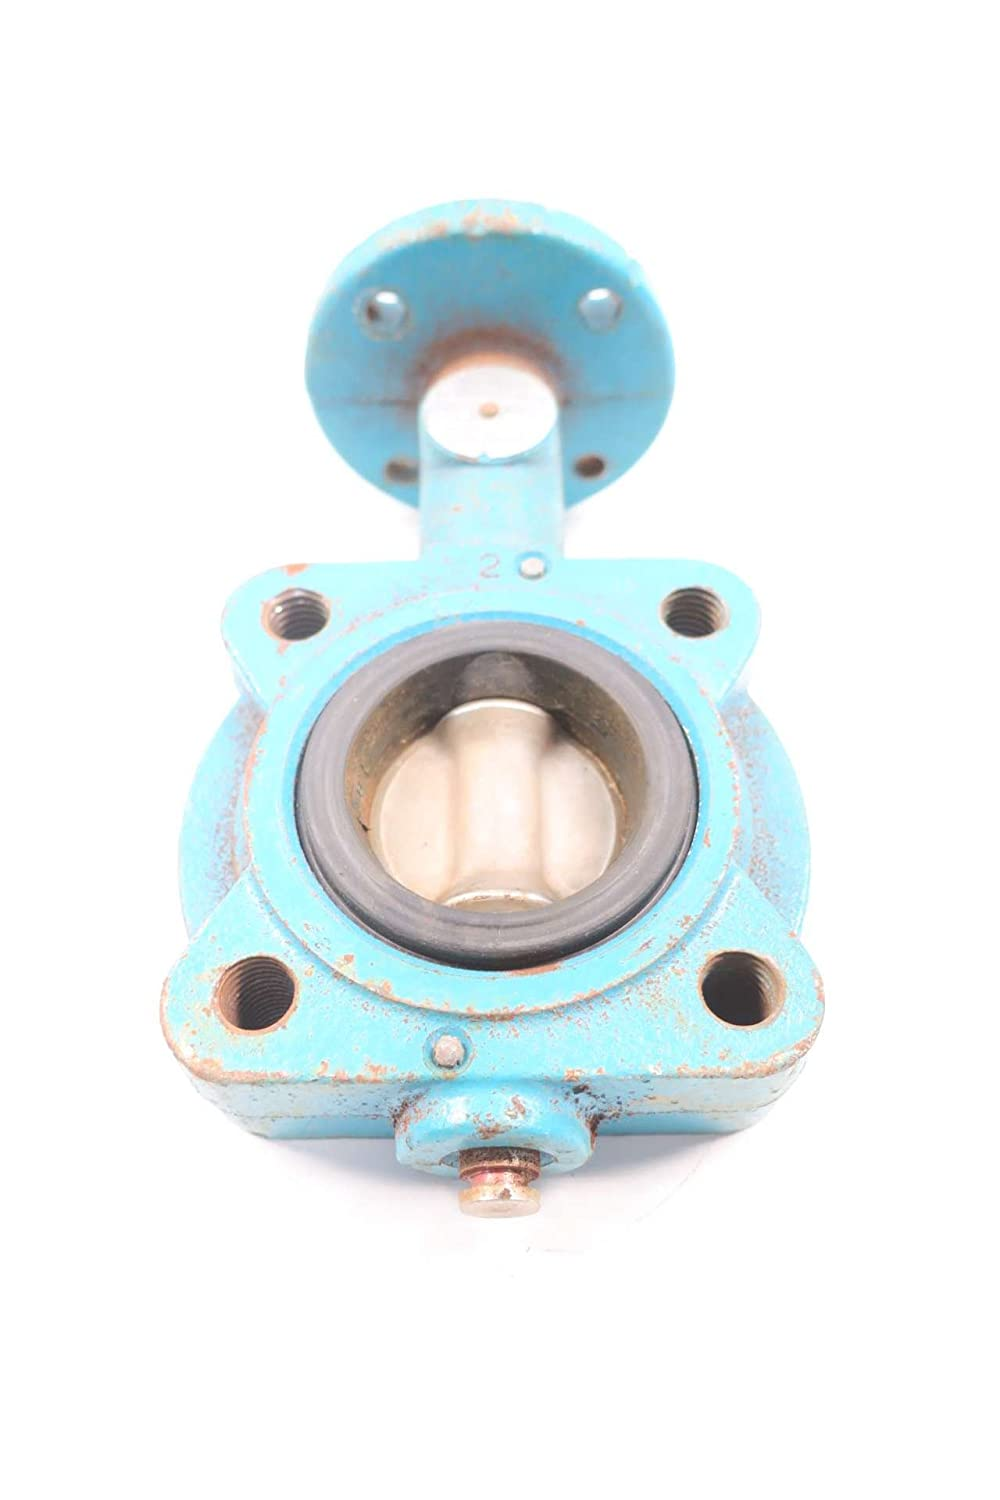 GRINNELL LC-8271-7 2 in Manual Iron FLANGED Butterfly Valve D577558